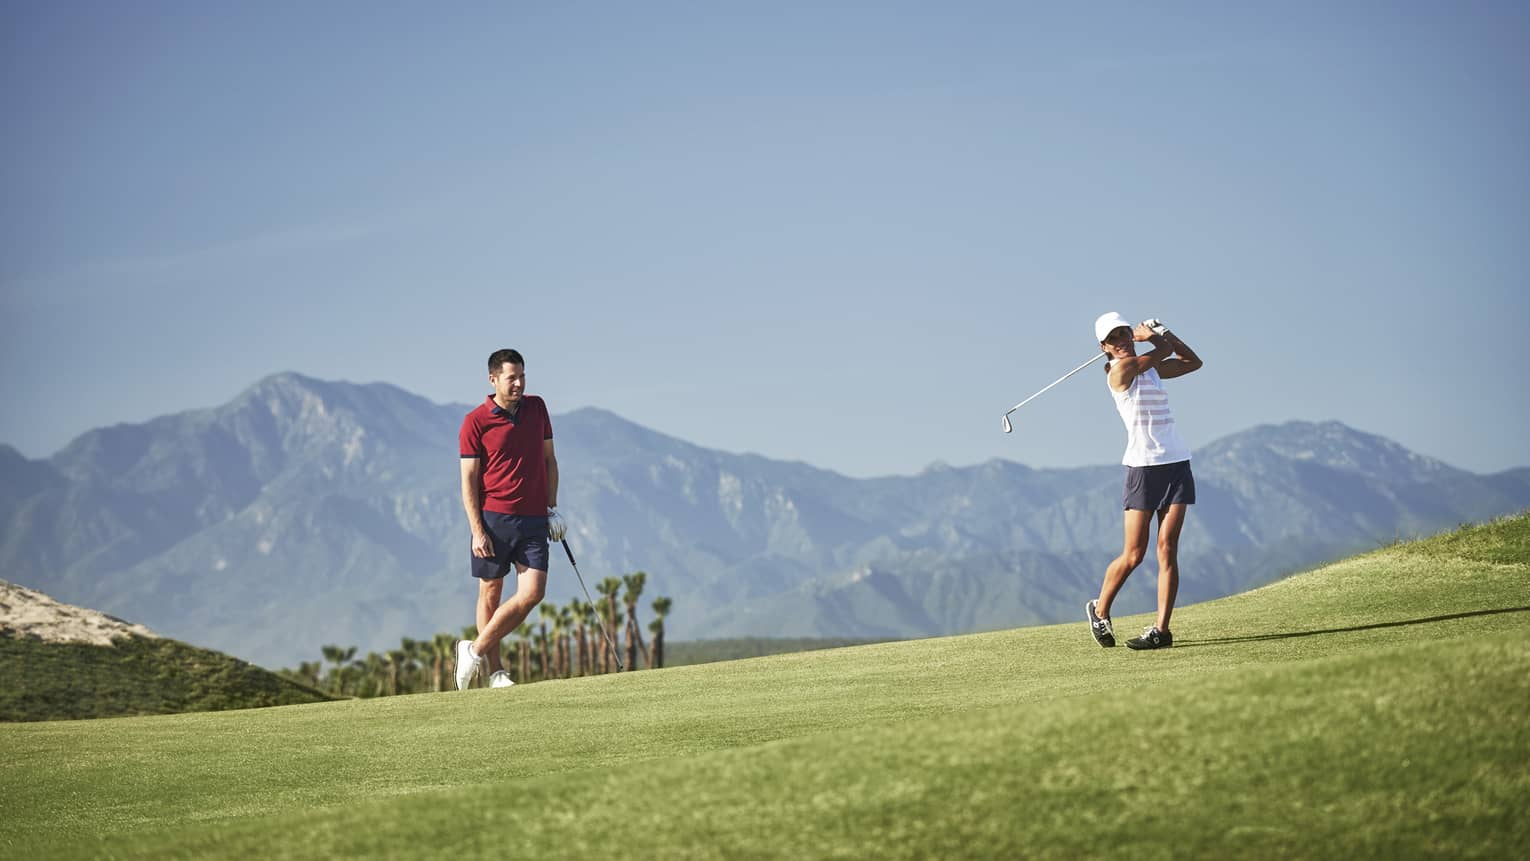 Woman swings golf club as man watches on green course, mountains in background